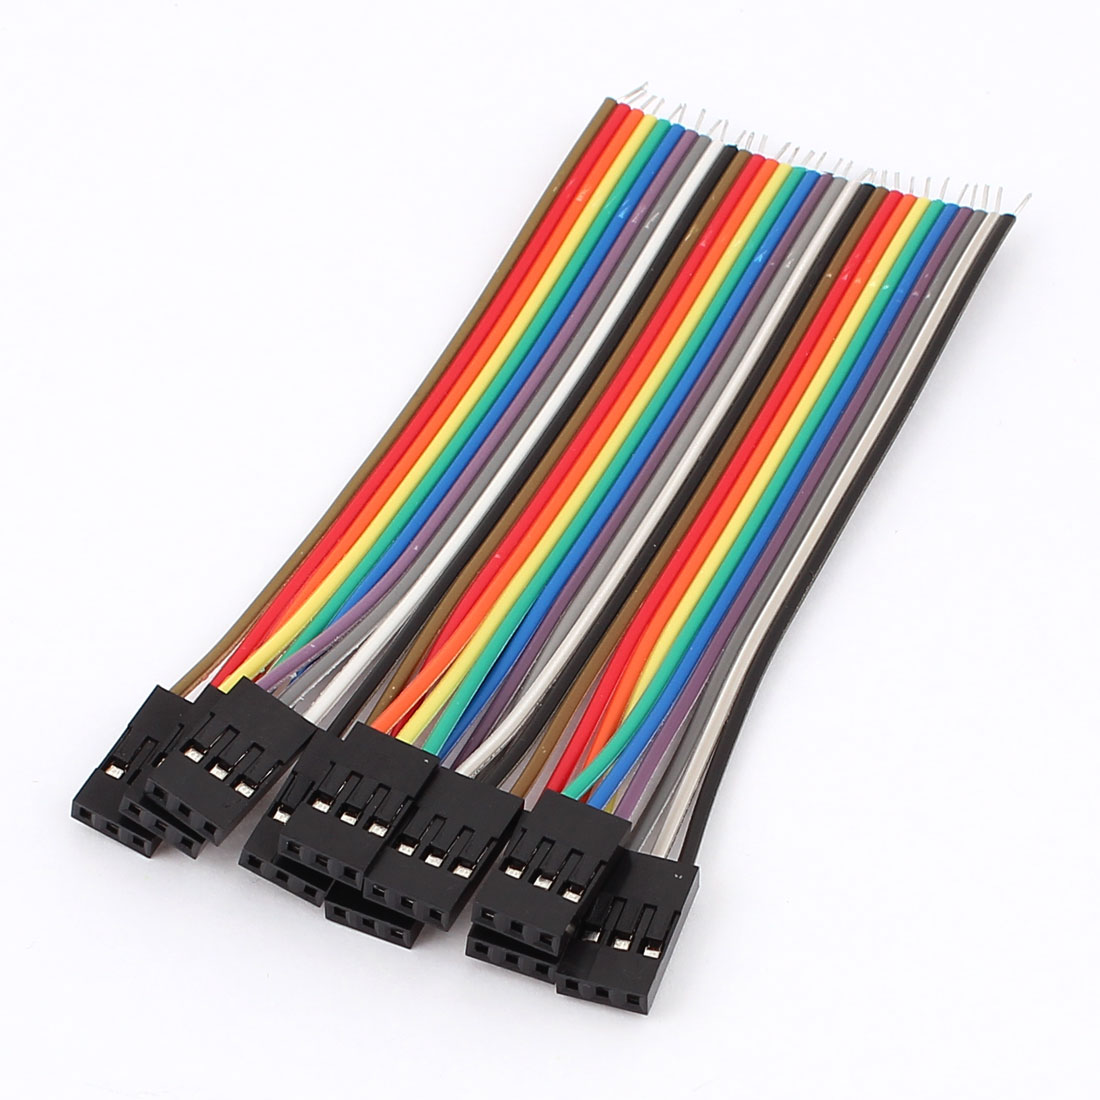 10pcs 10cm 2.54mm 3P Female Flat Ribbon Wire Jumper Cable for Breadboard